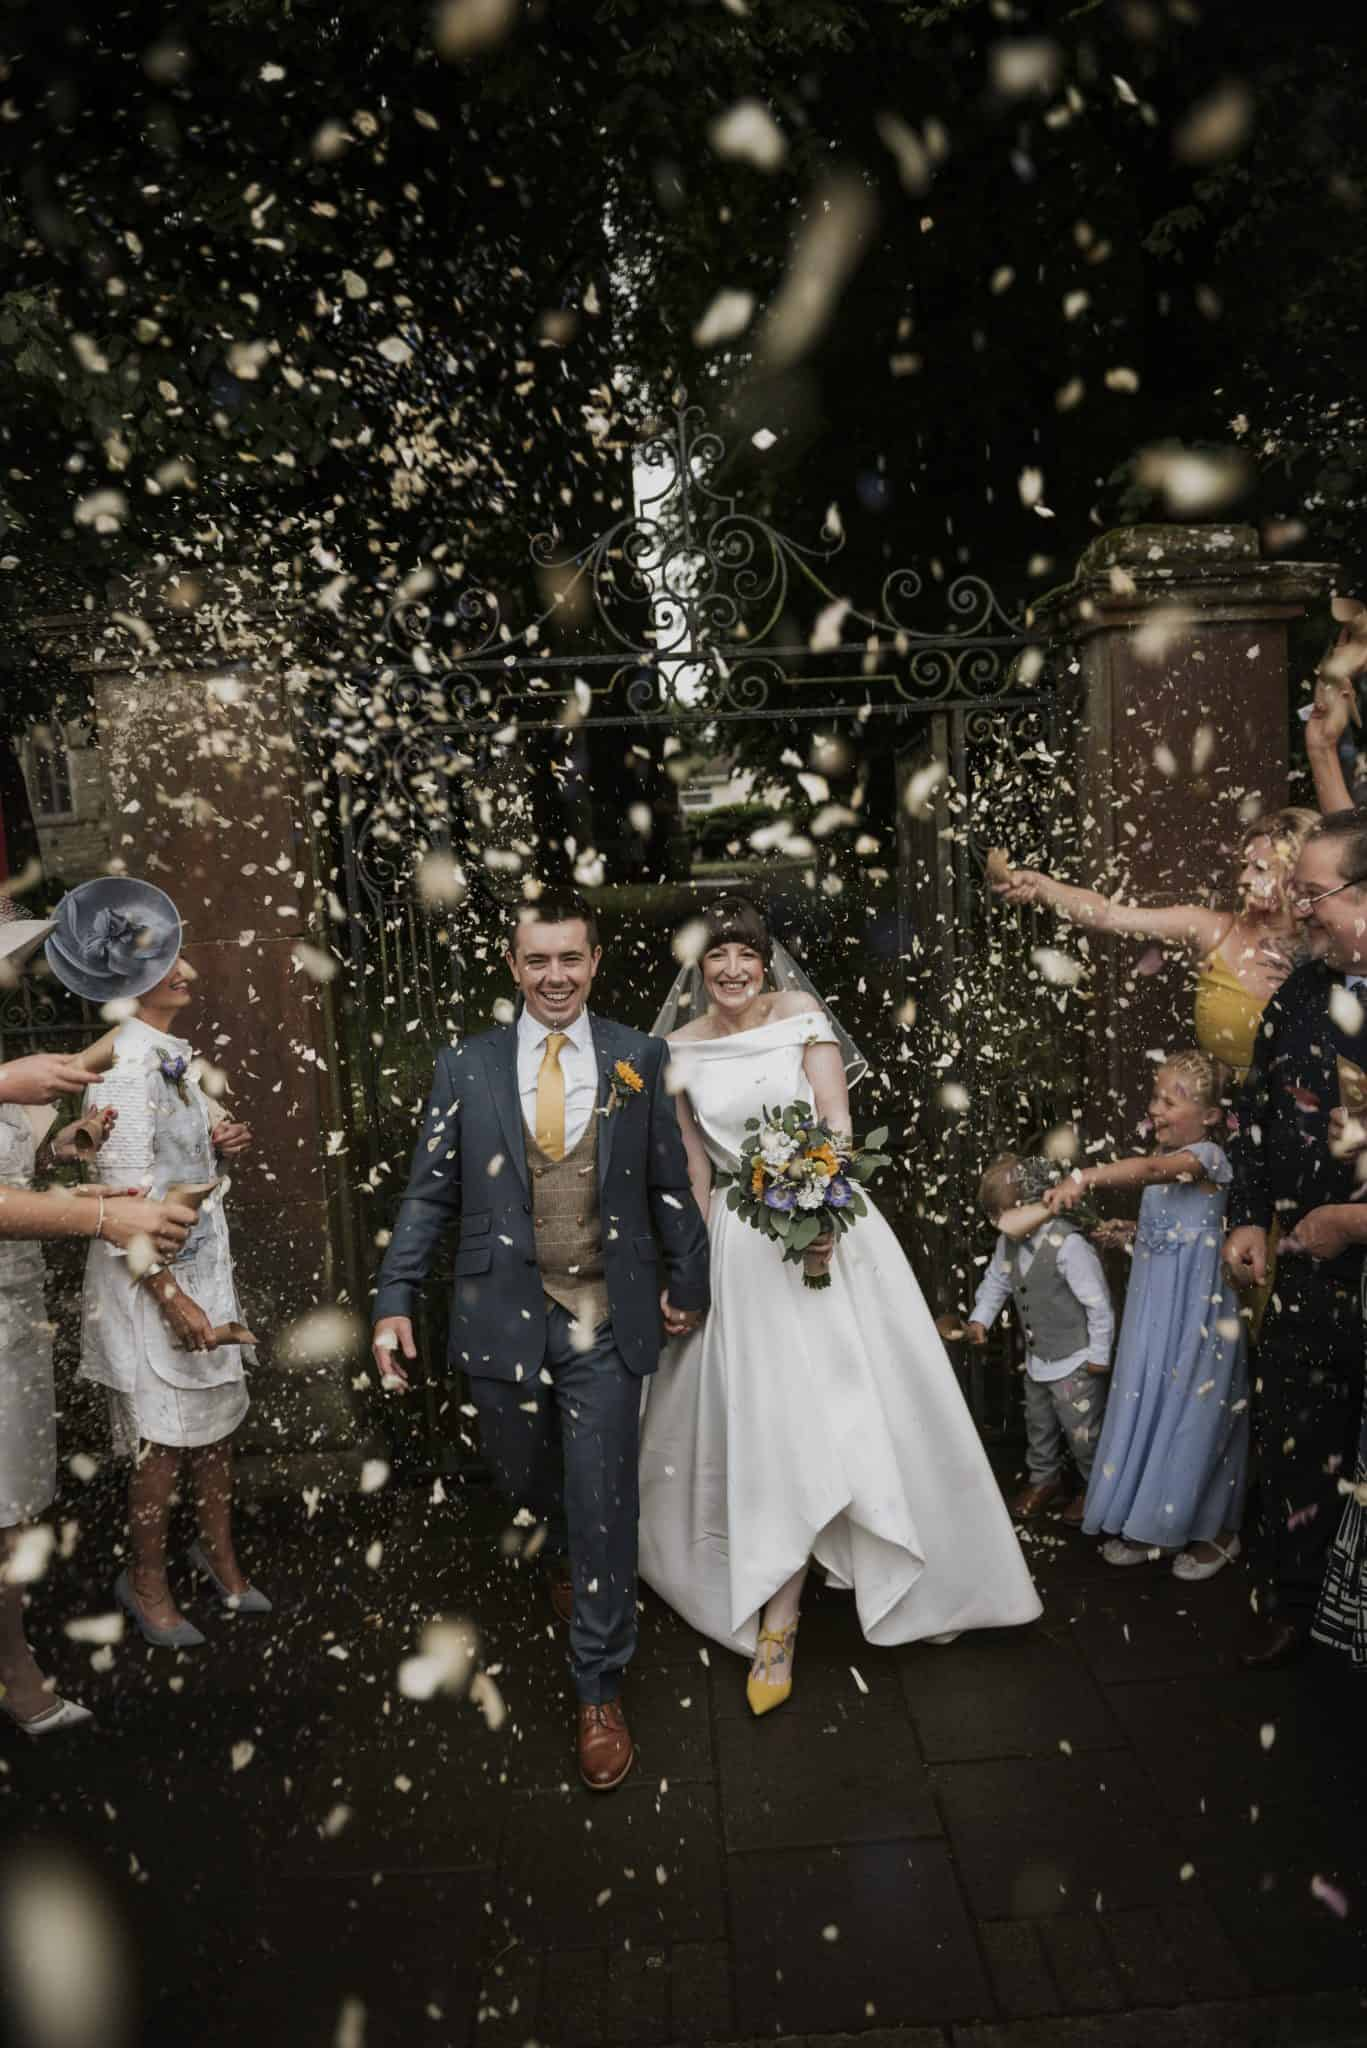 Bride & Groom walk through confetti